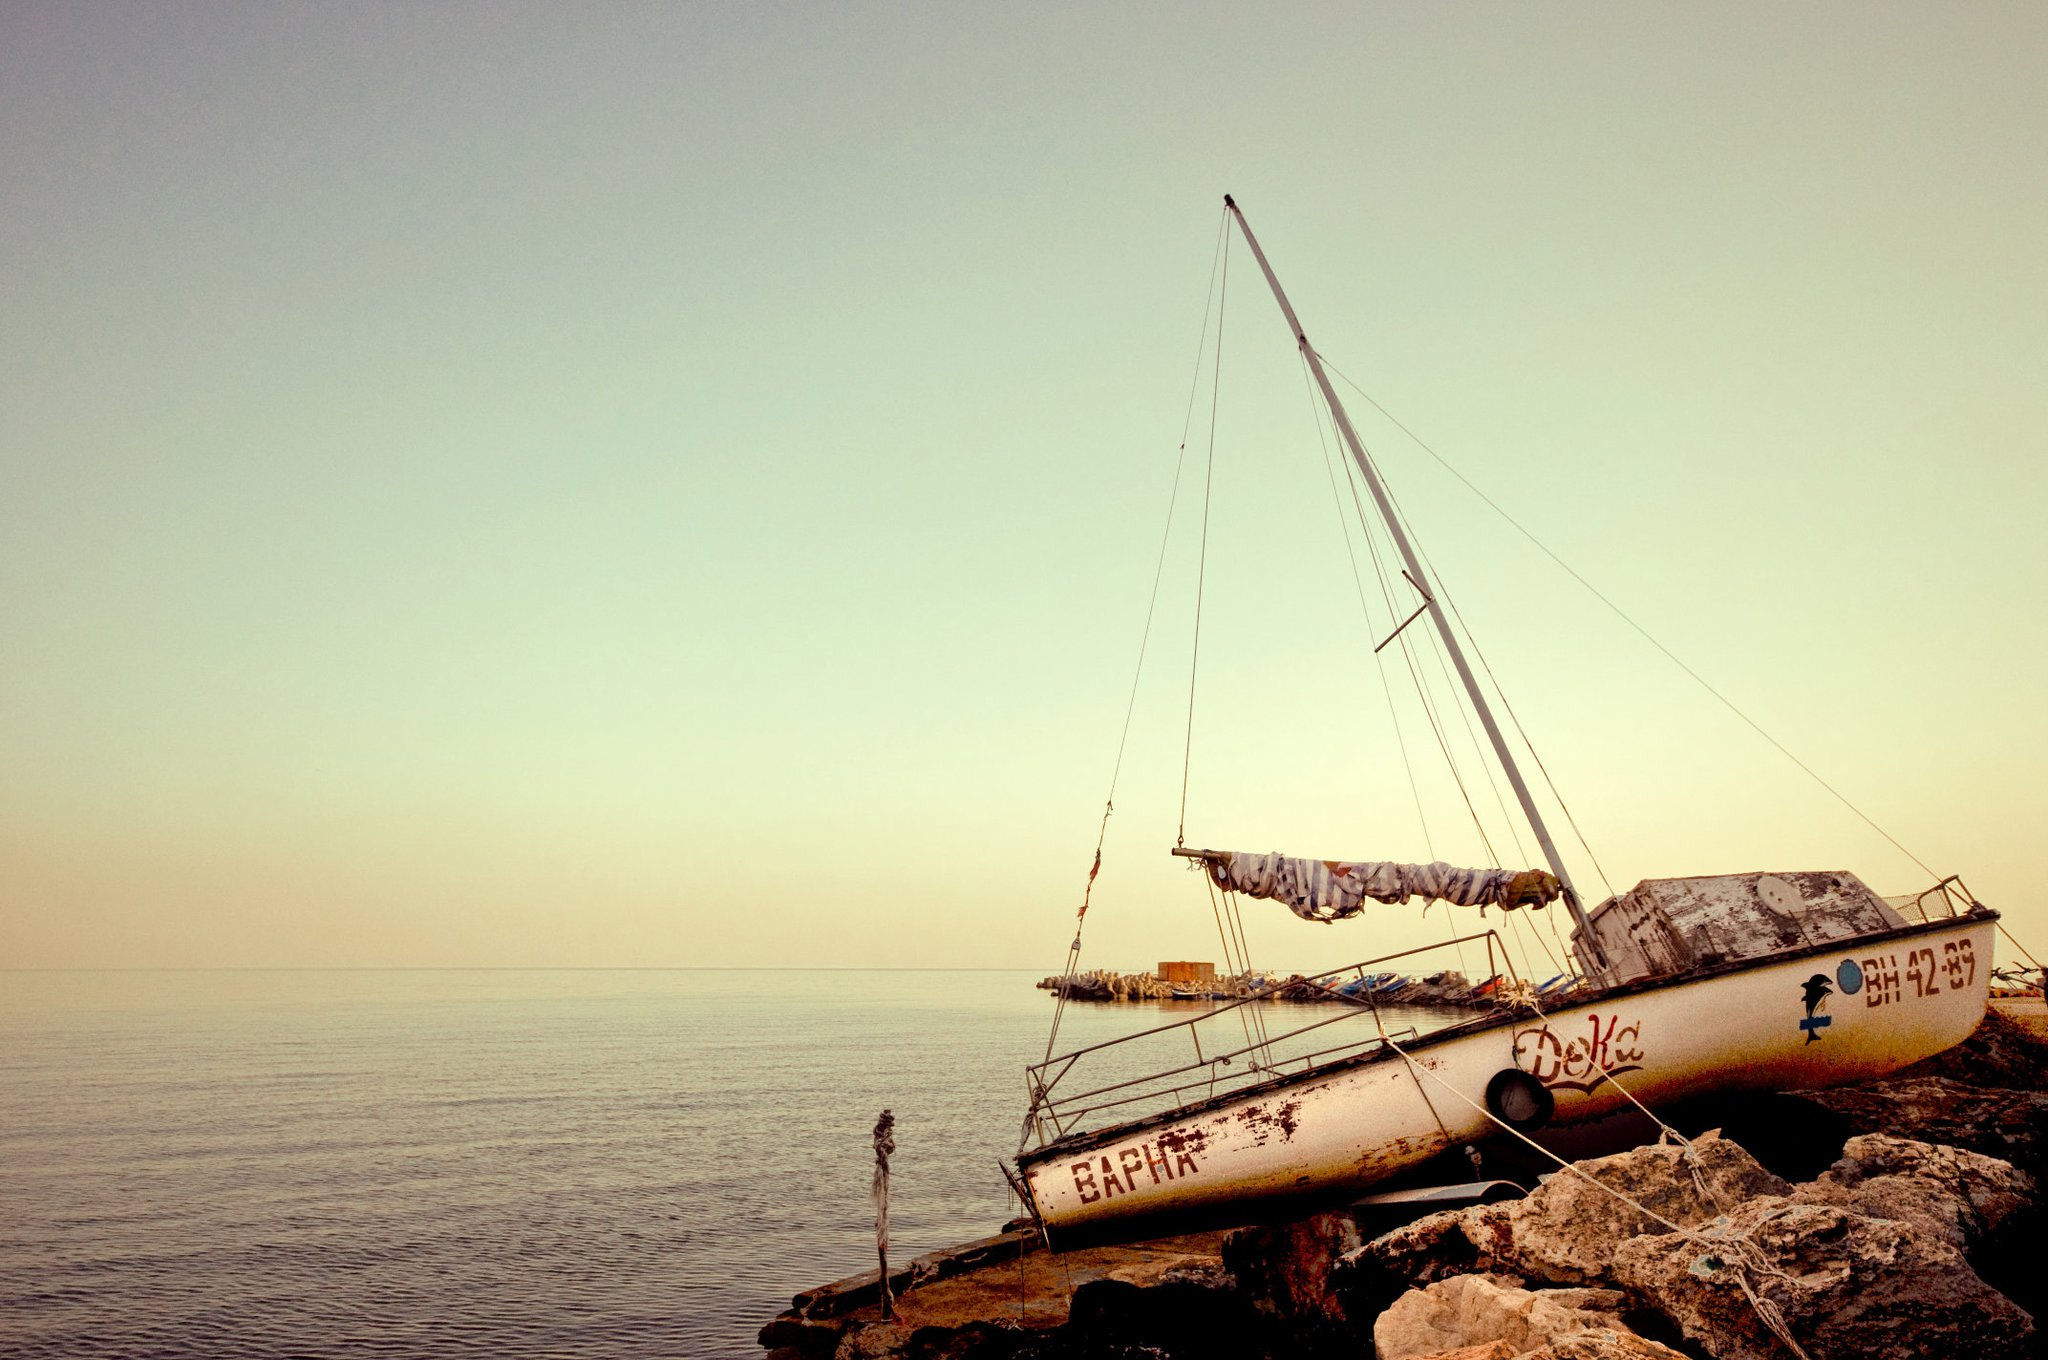 Photograph Bulgarian boat by Bev Y. on 500px